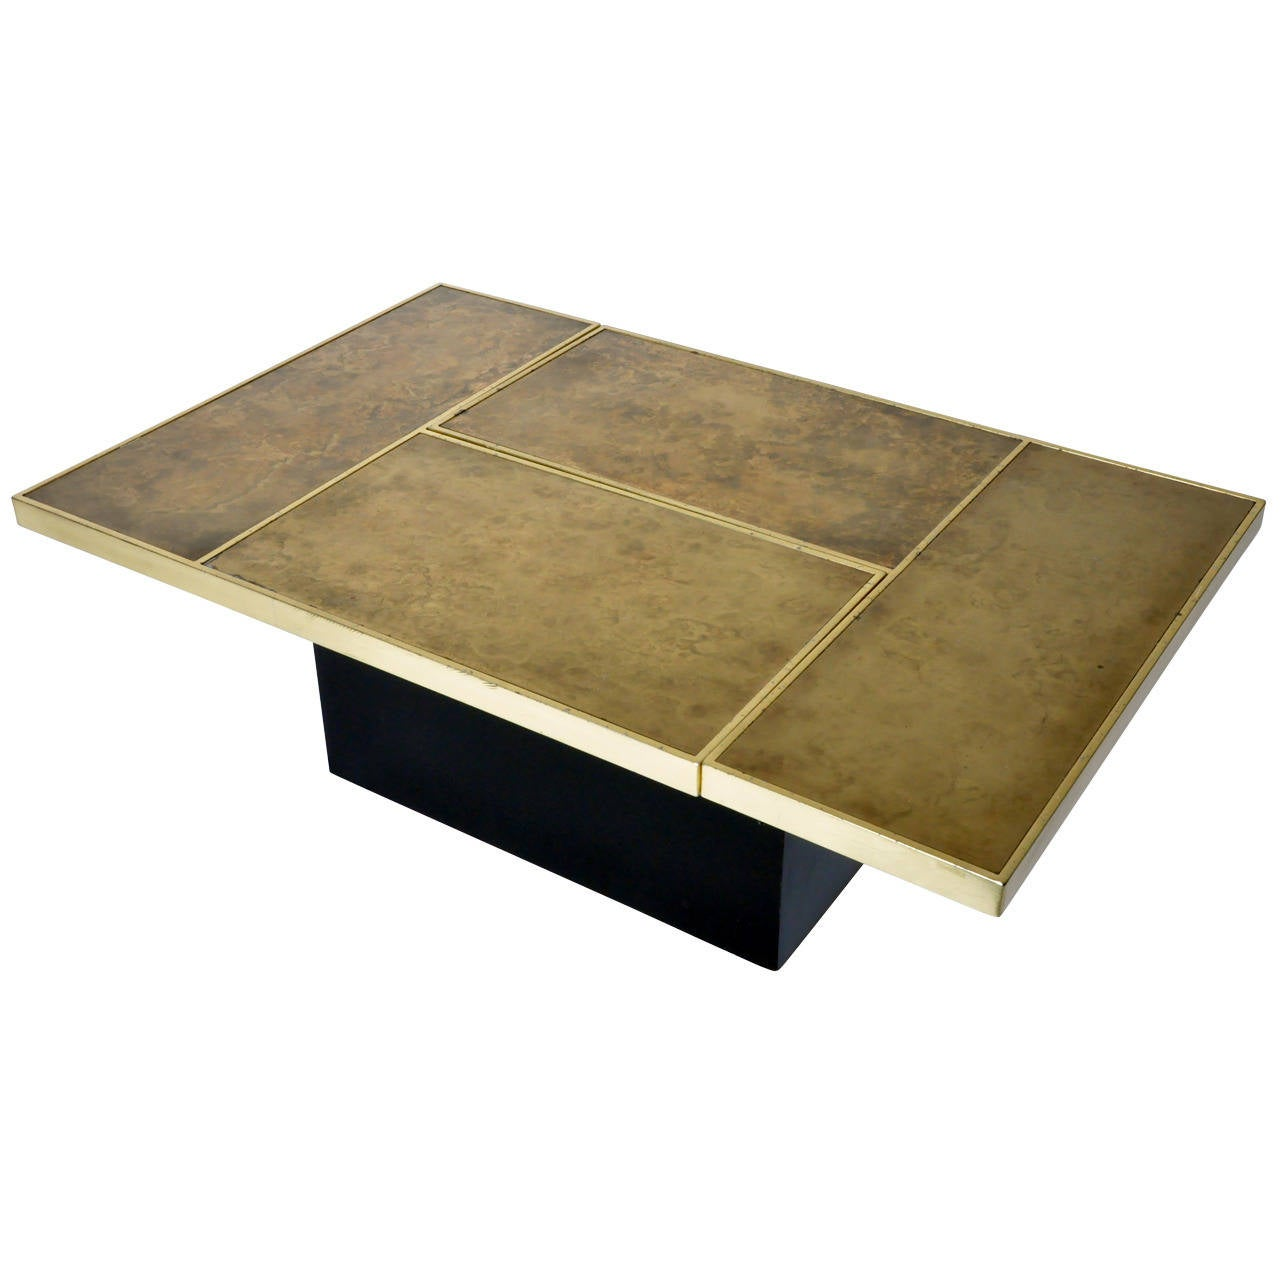 Gold Plated Iron Convertible Coffee Table At 1stdibs